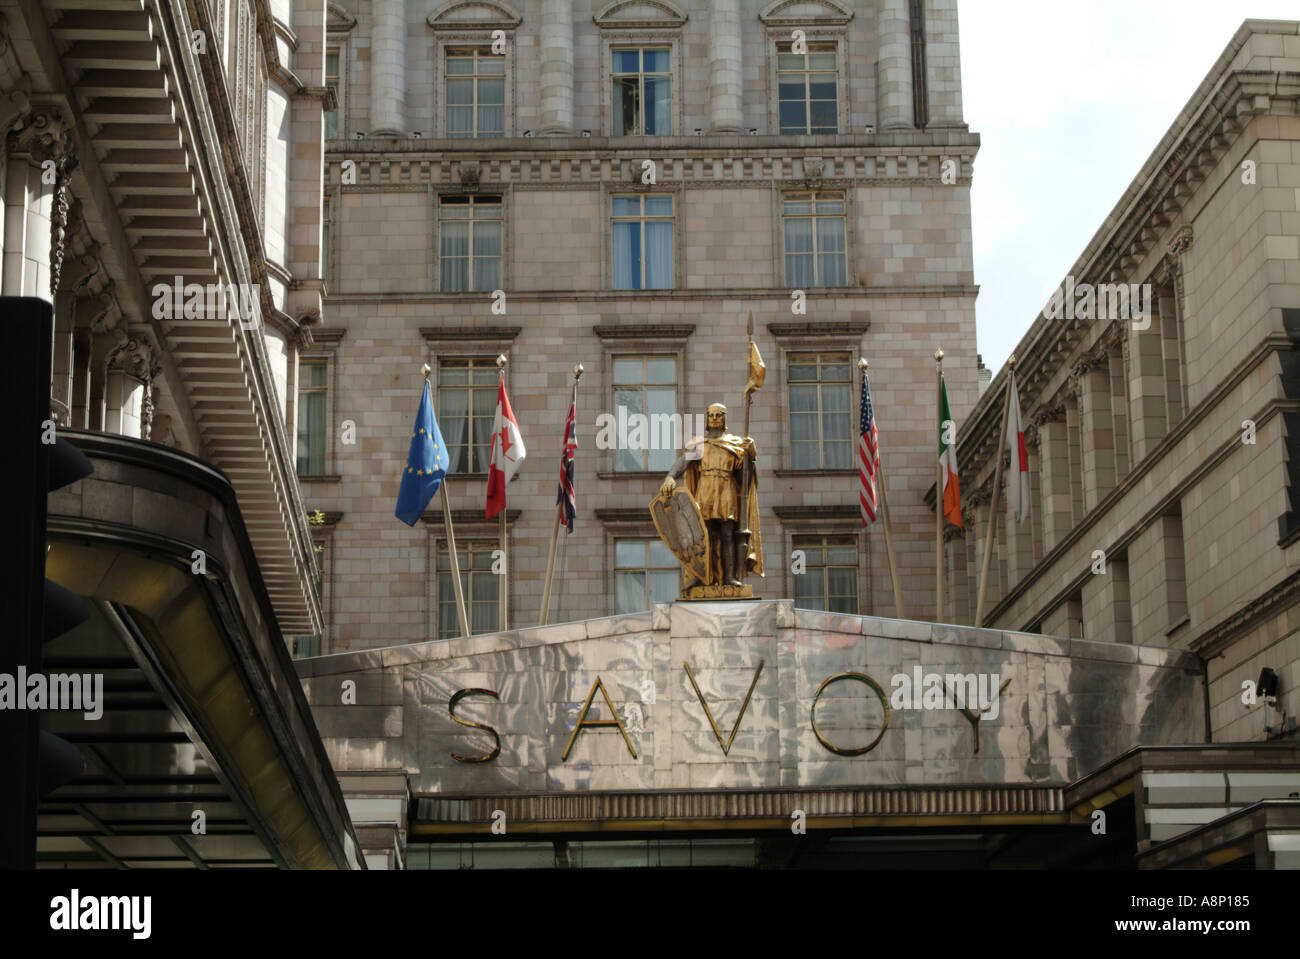 The Savoy Hotel on The Strand - Stock Image